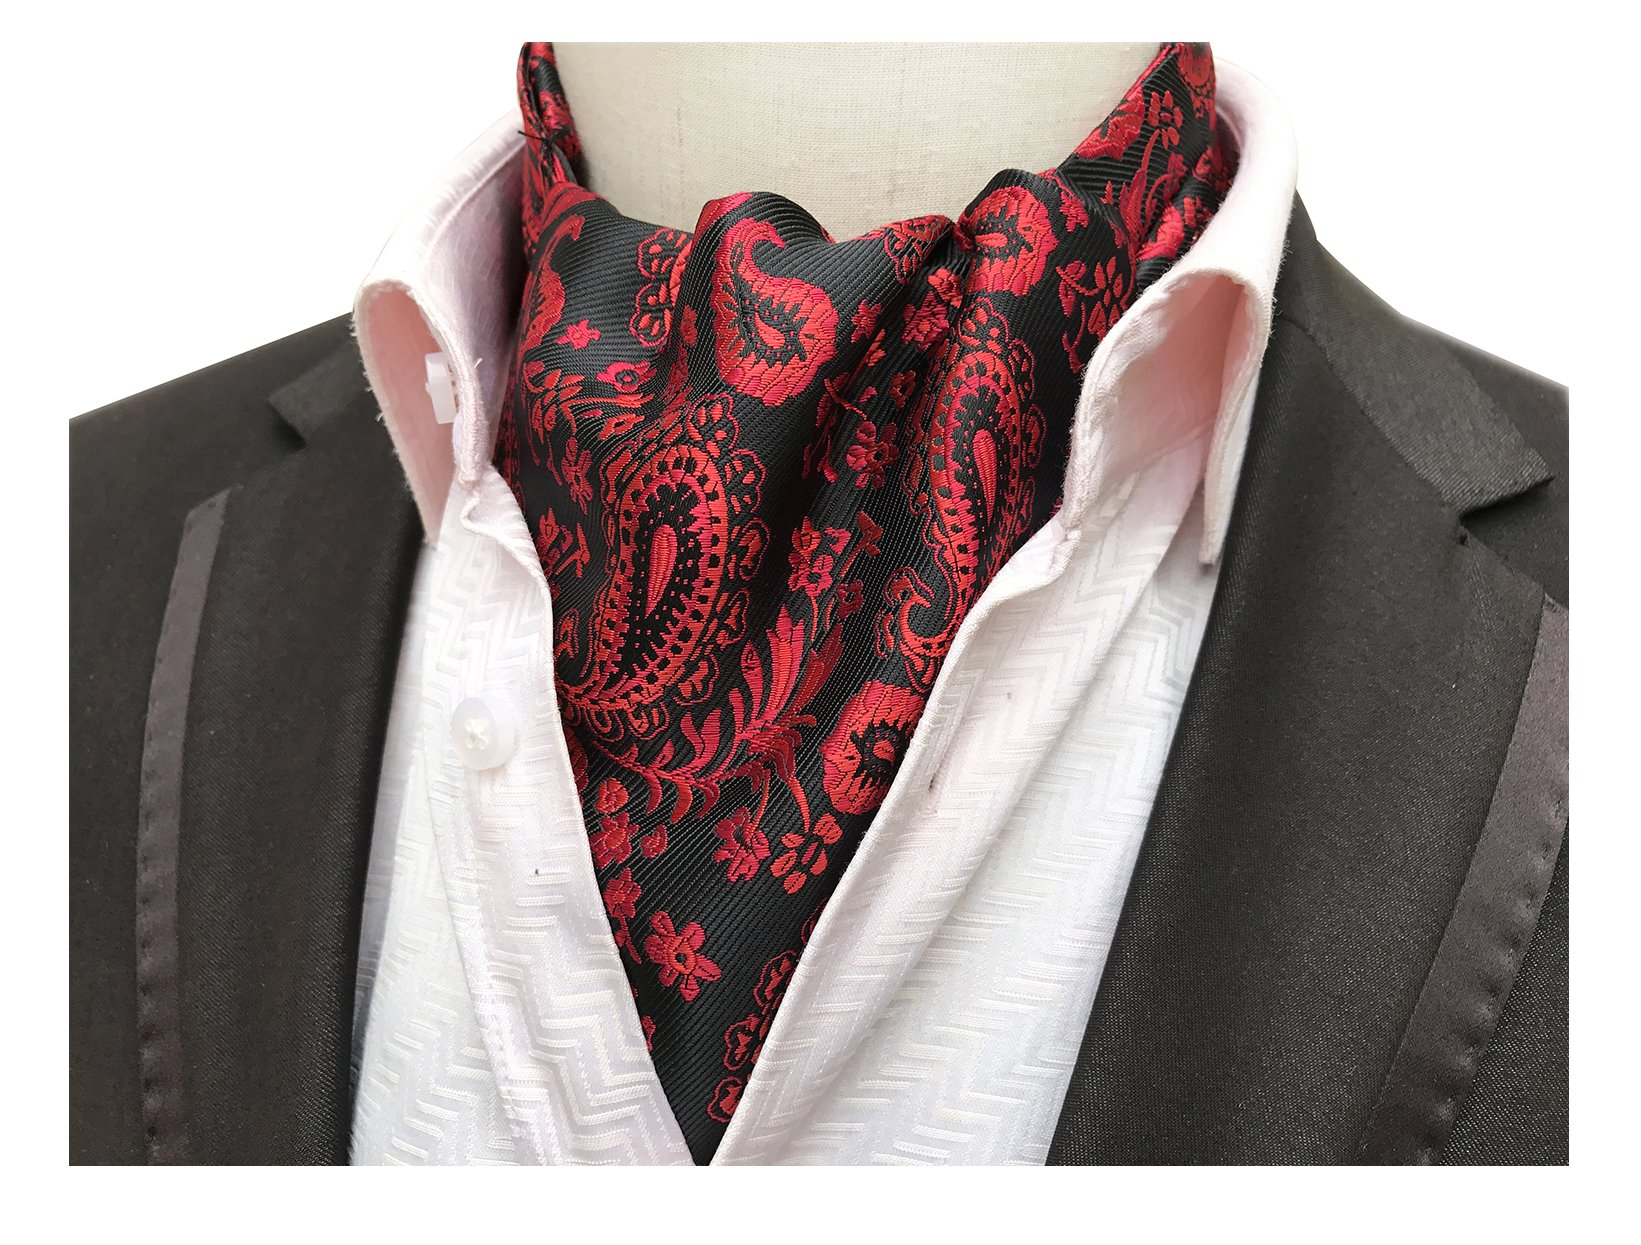 Elfeves Men's Black Red Floral Patterned Cravat Ties Jacquard Woven Ball Ascot